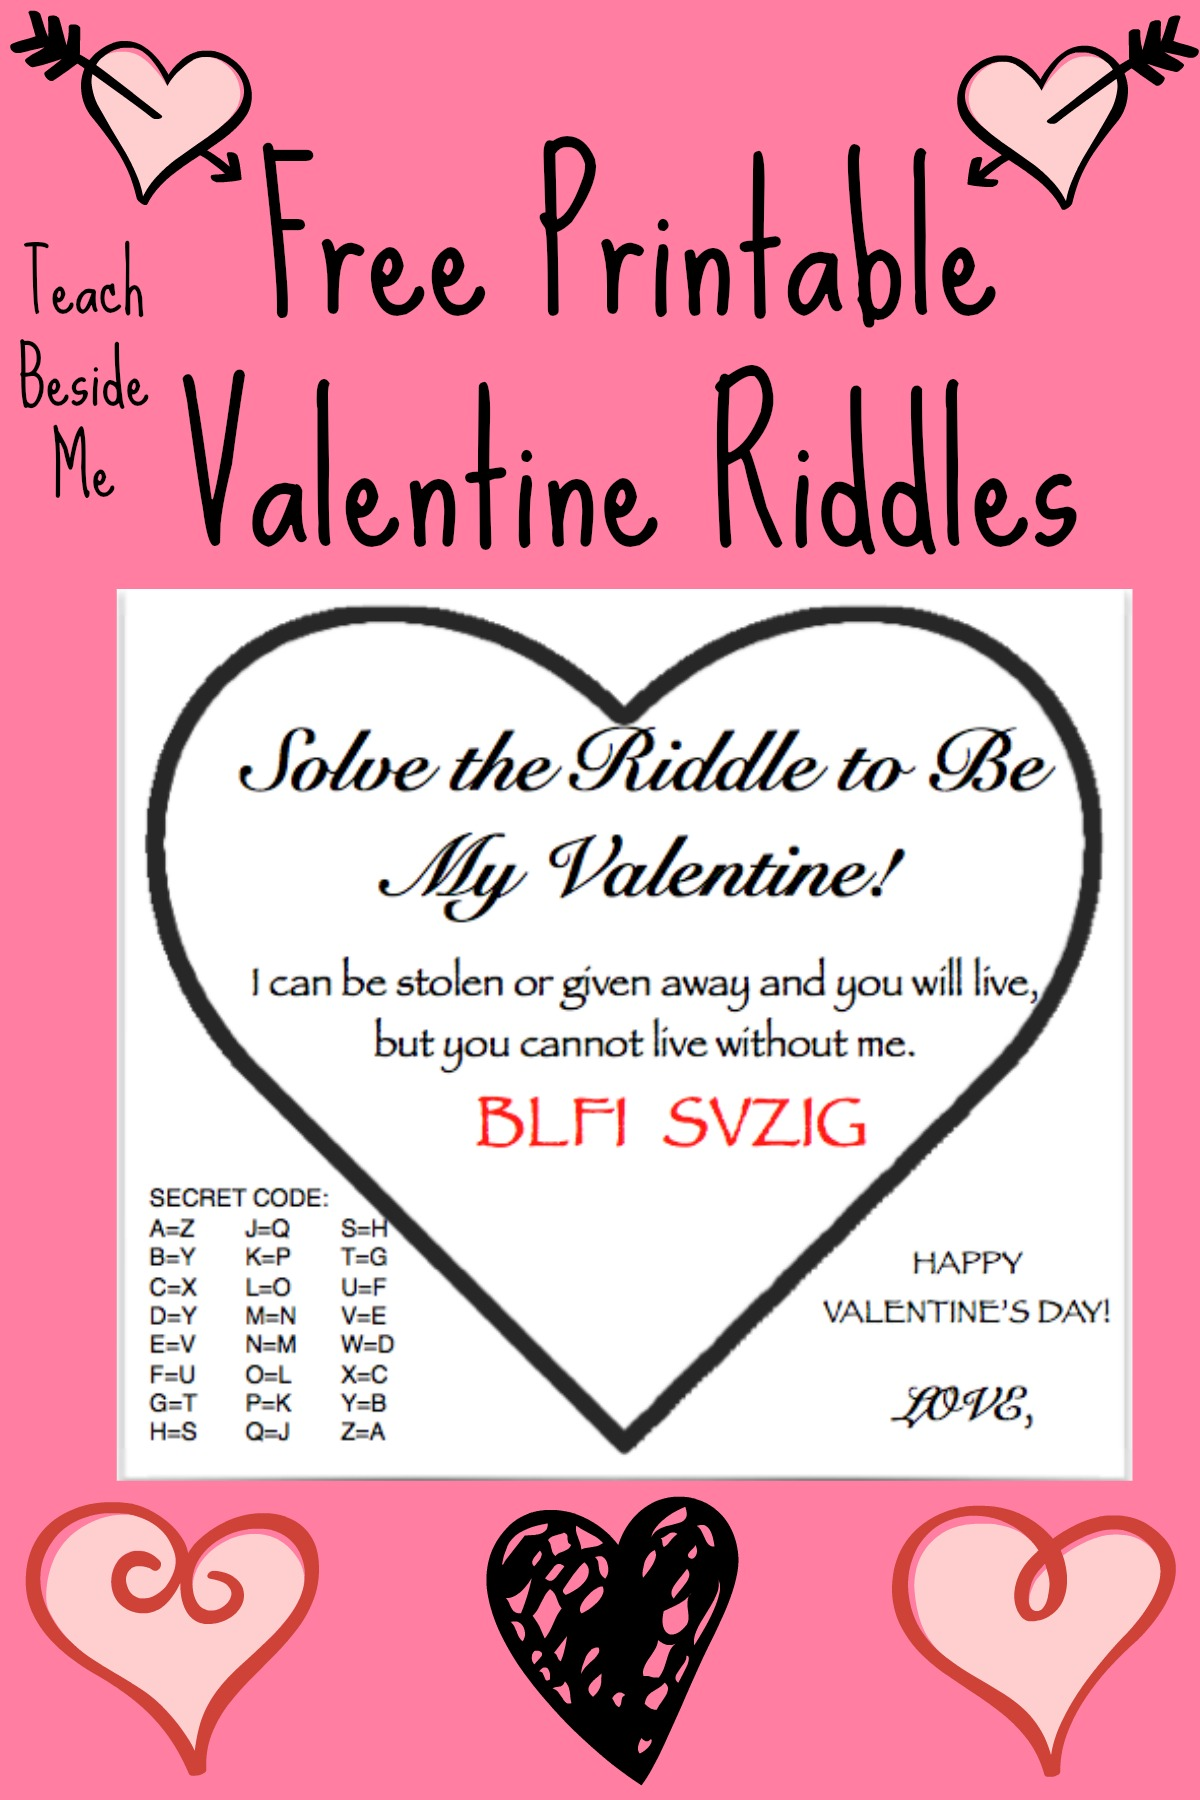 image about Riddles Printable named Totally free Printable Valentine Riddle Playing cards Practice Beside Me